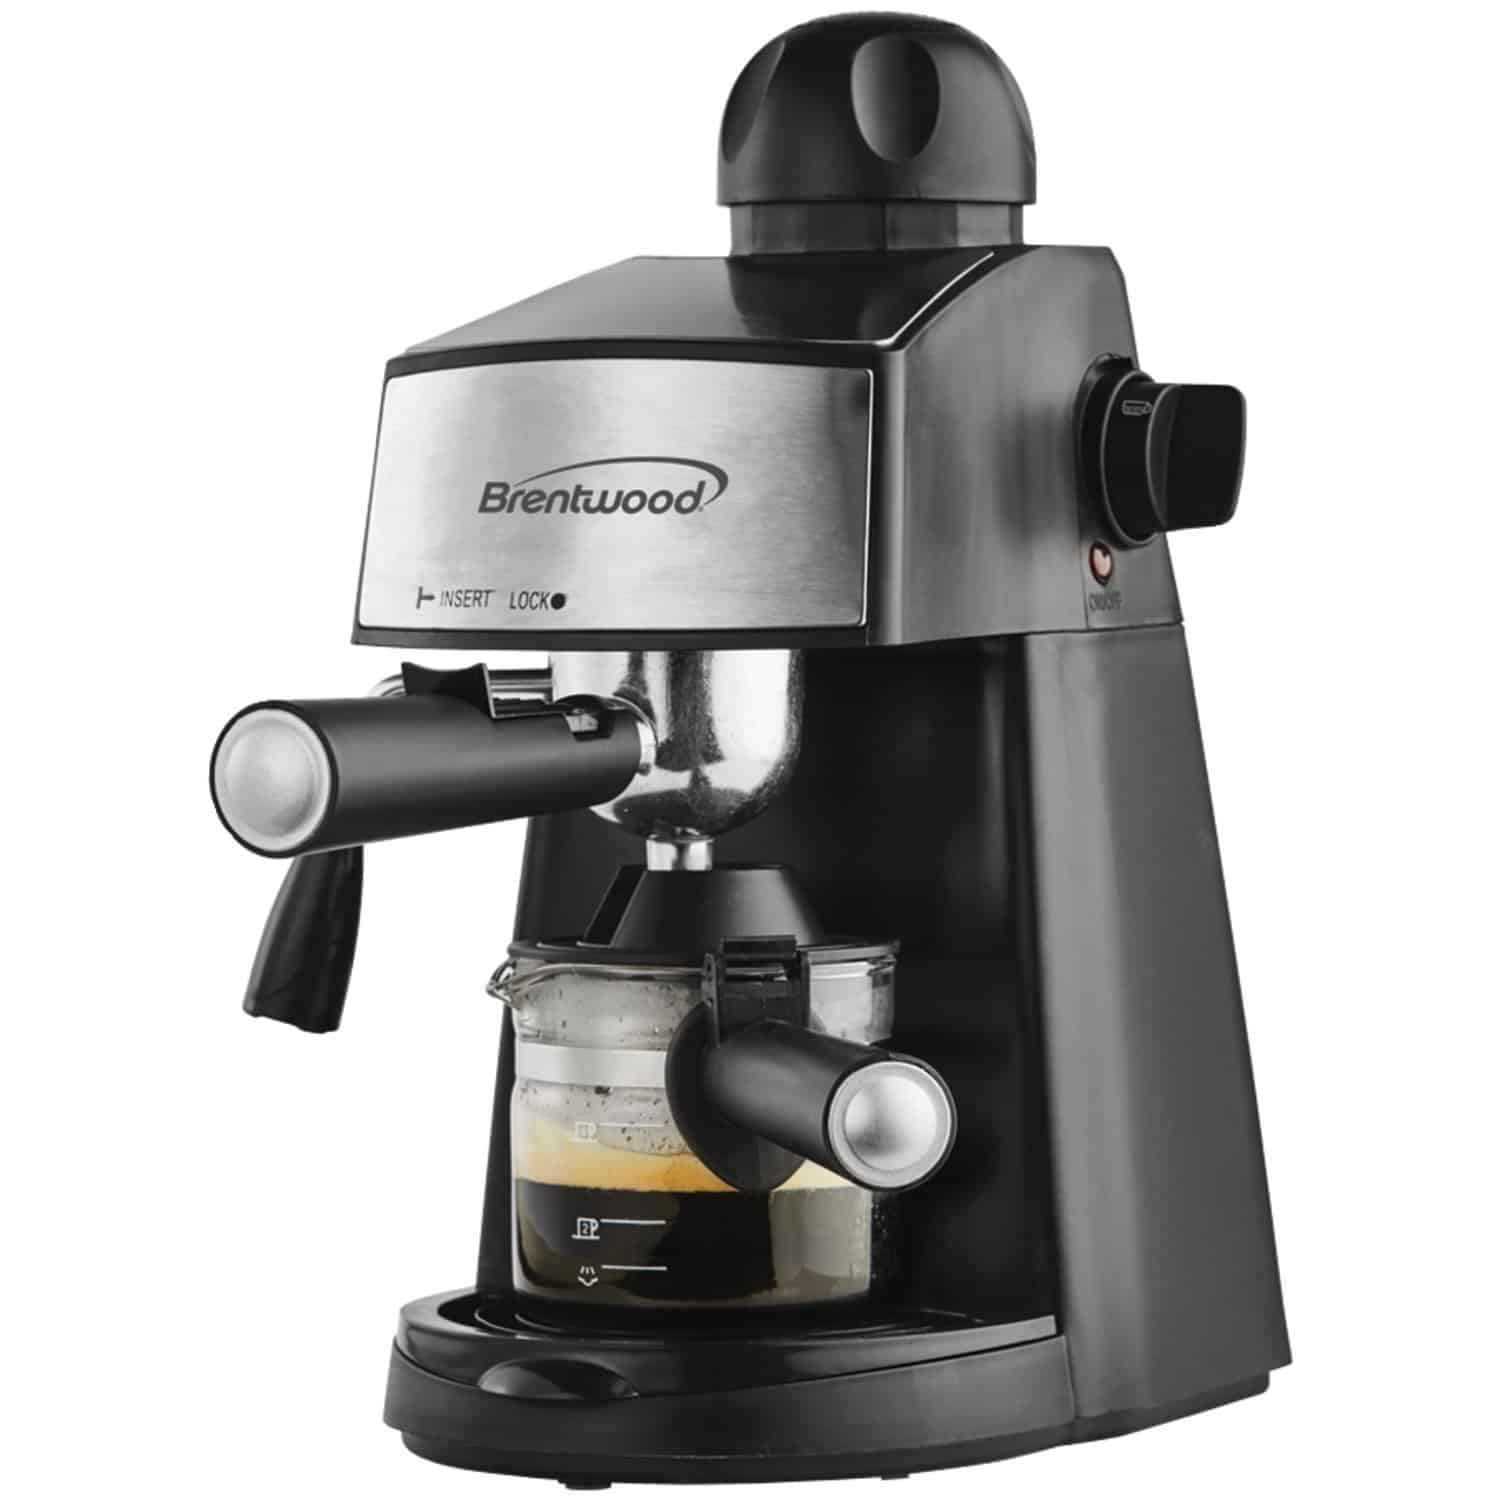 Brentwood Cappuccino Maker